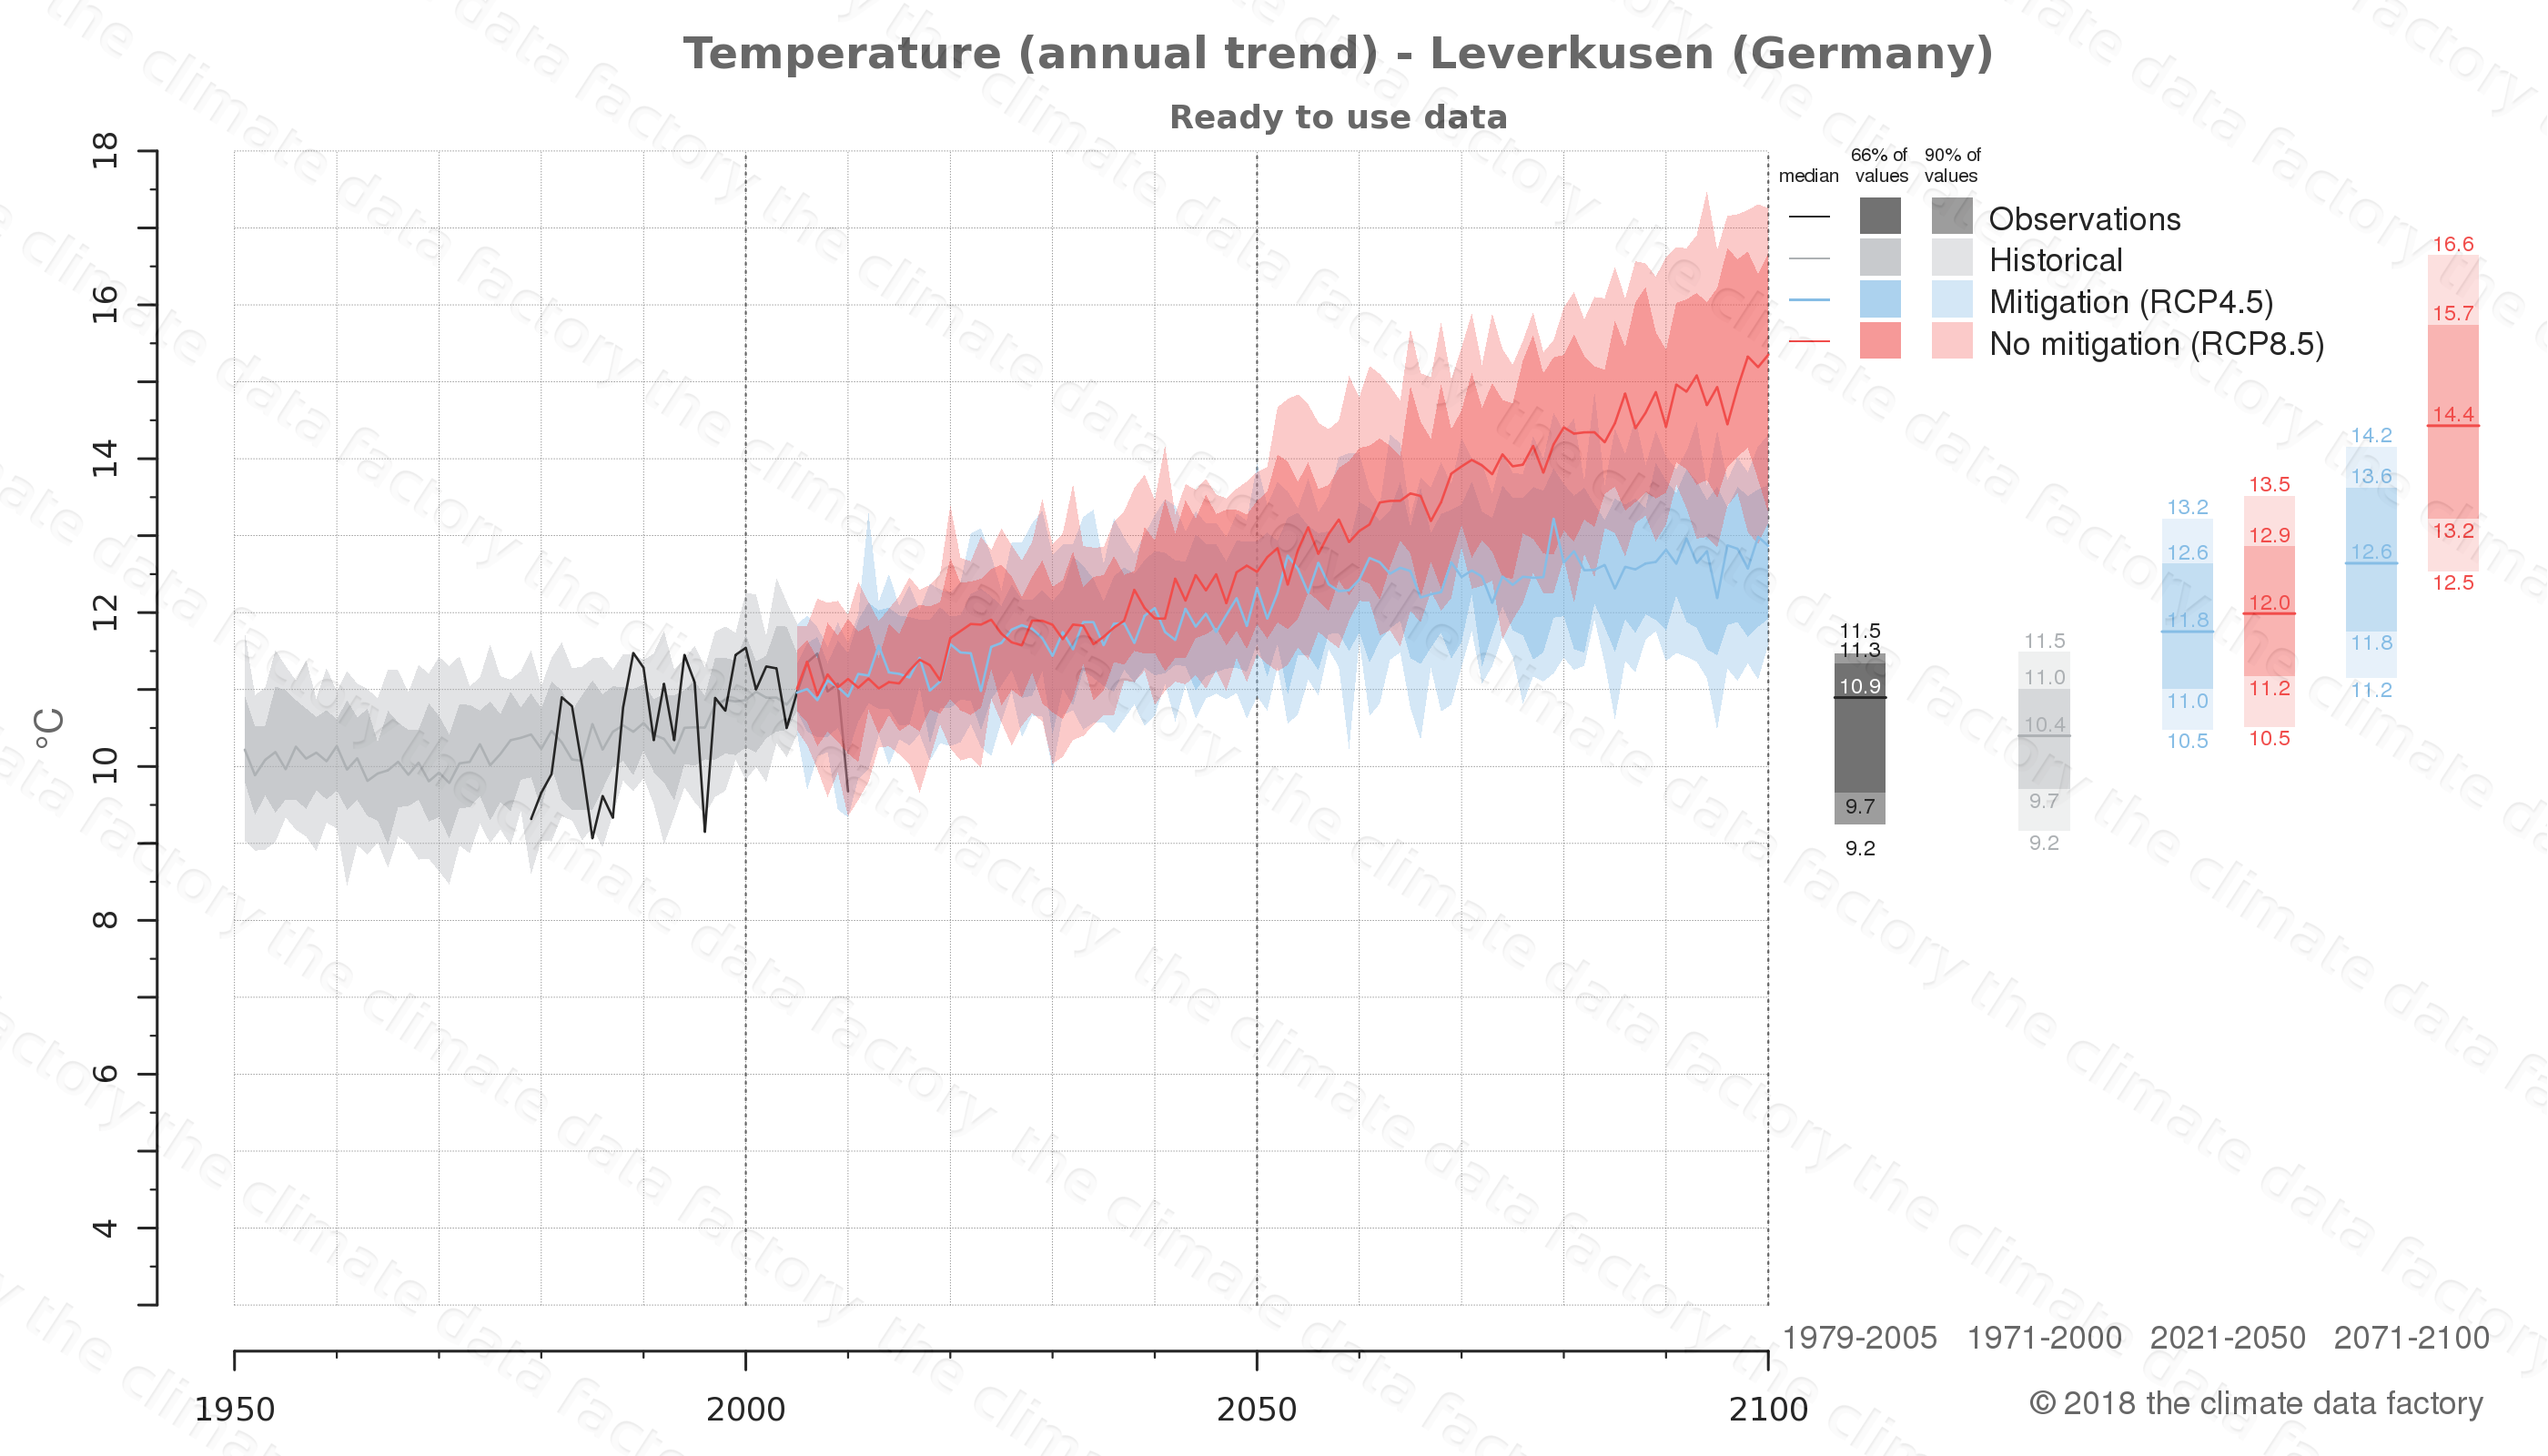 climate change data policy adaptation climate graph city data temperature leverkusen germany